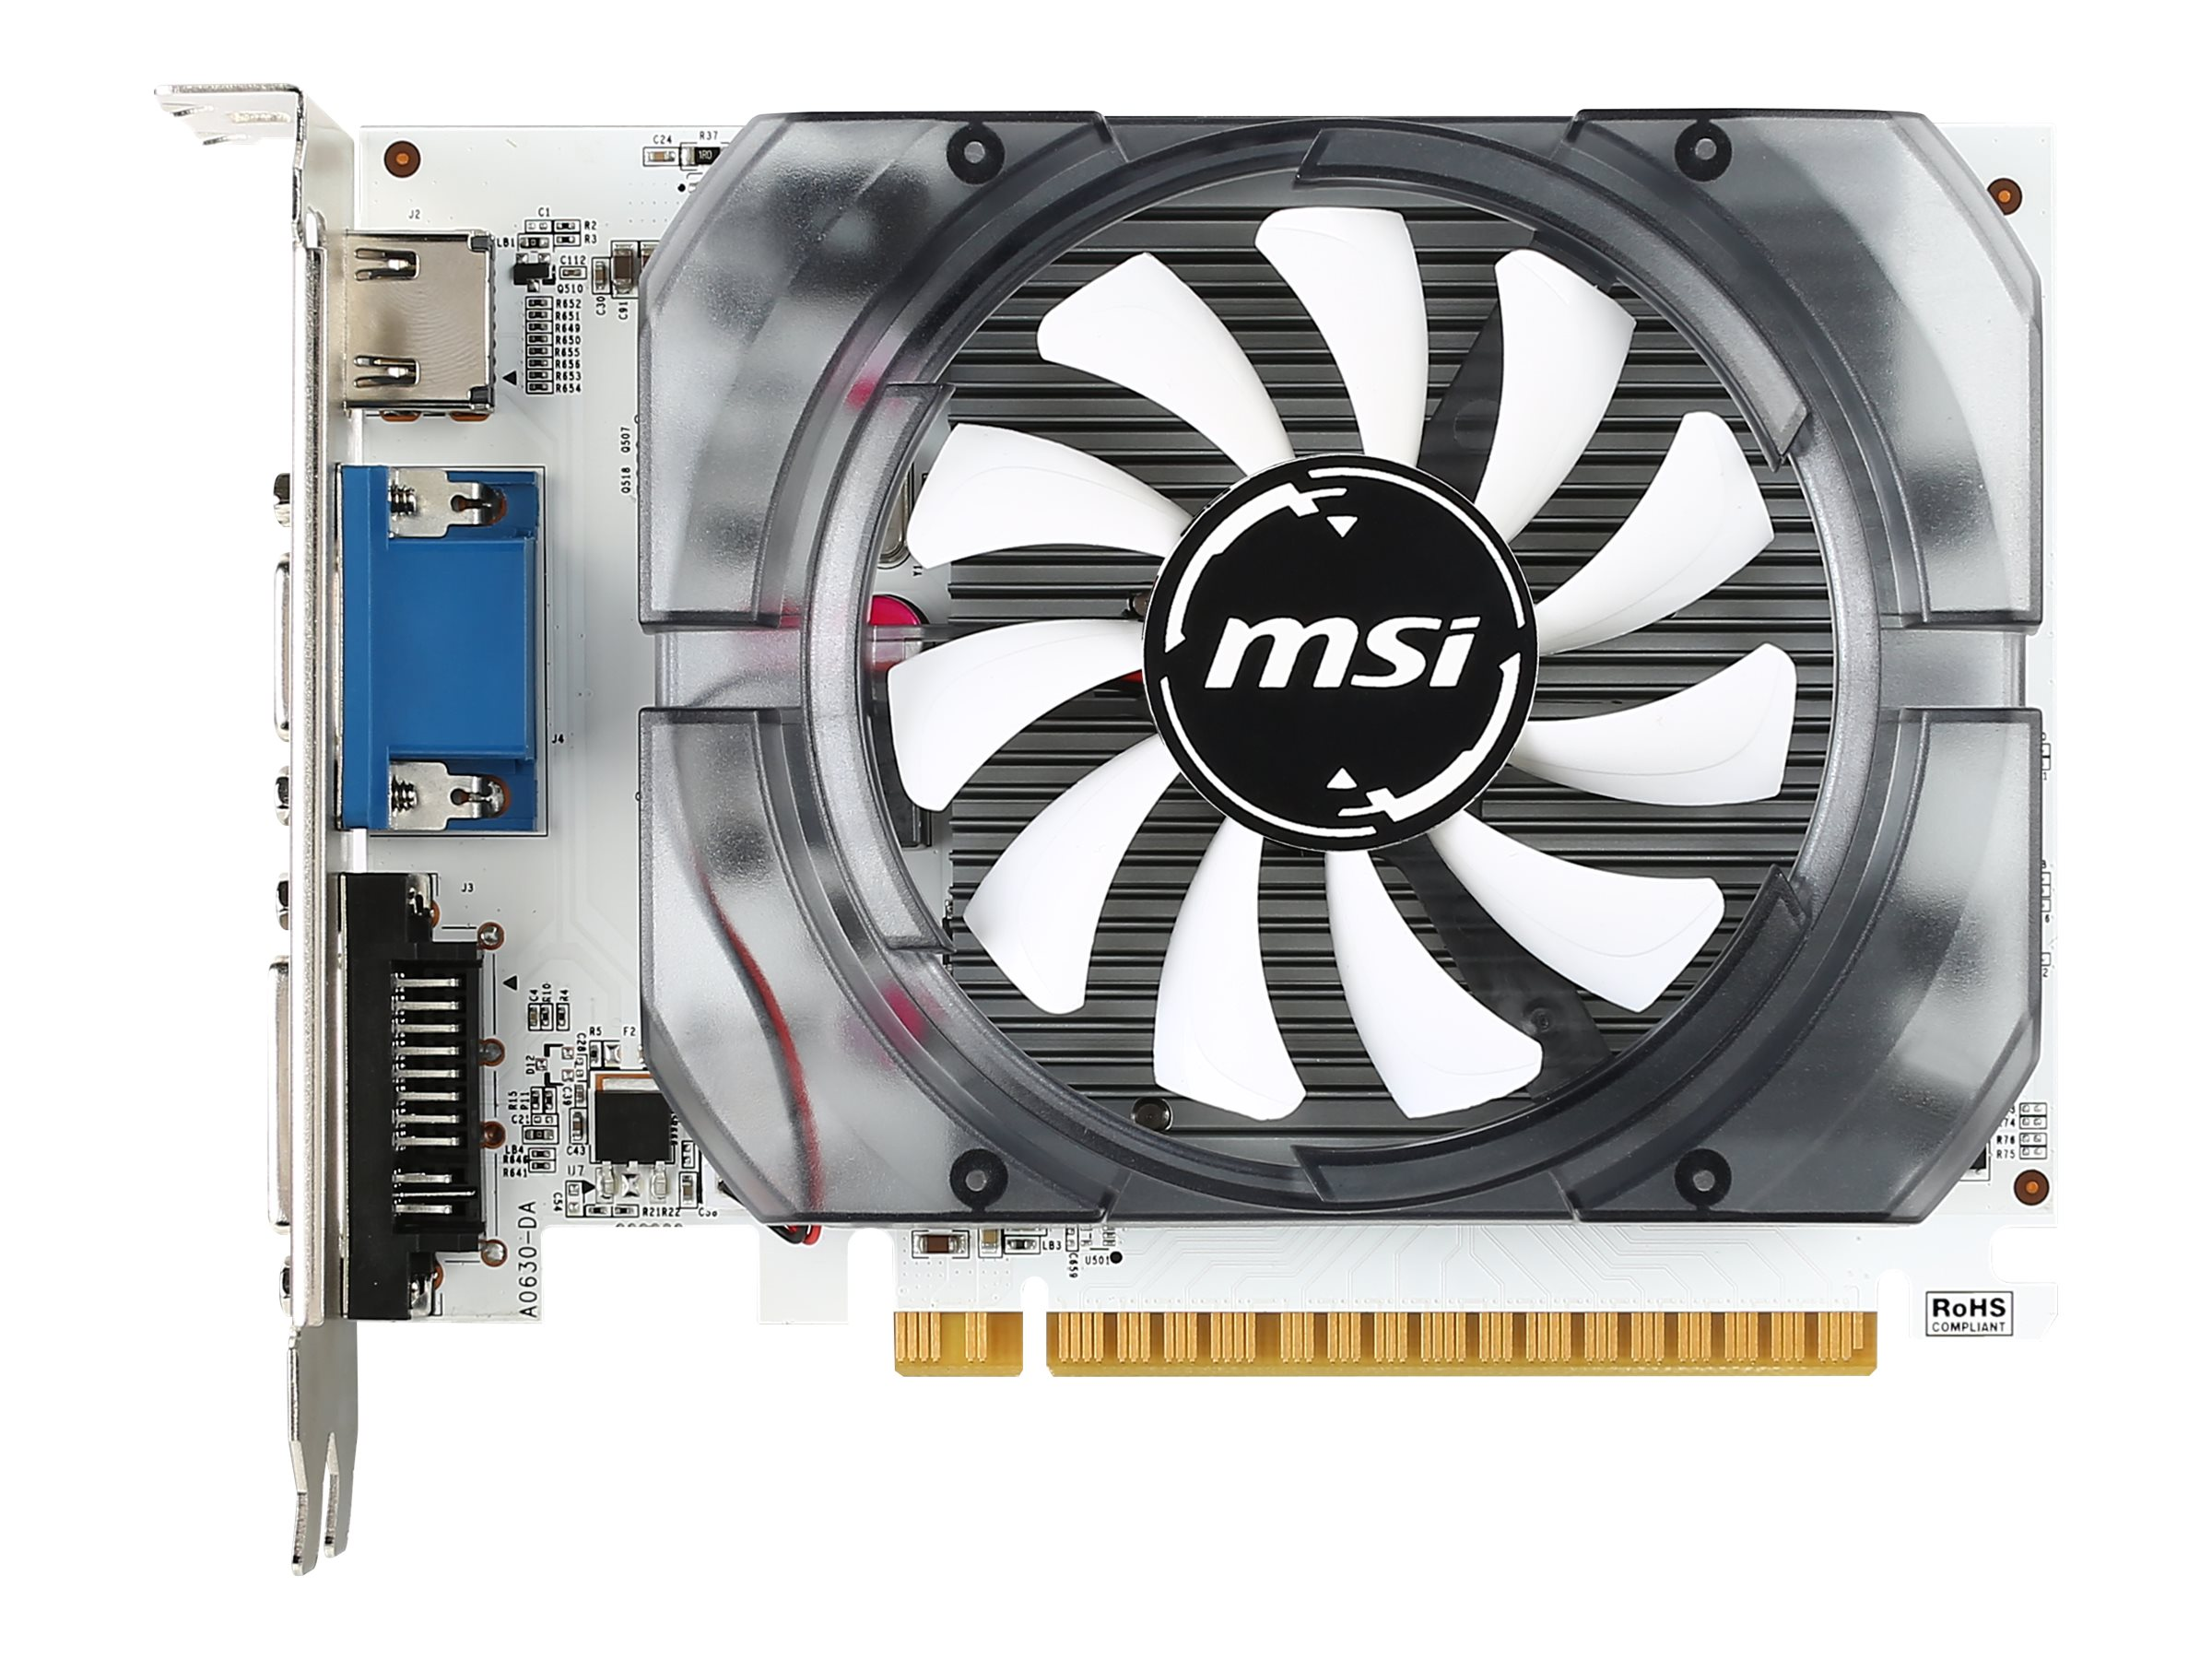 Microstar NVIDIA GeForce GT 730 PCIe 2.0 x16 Graphics Card, 2GB DDR3